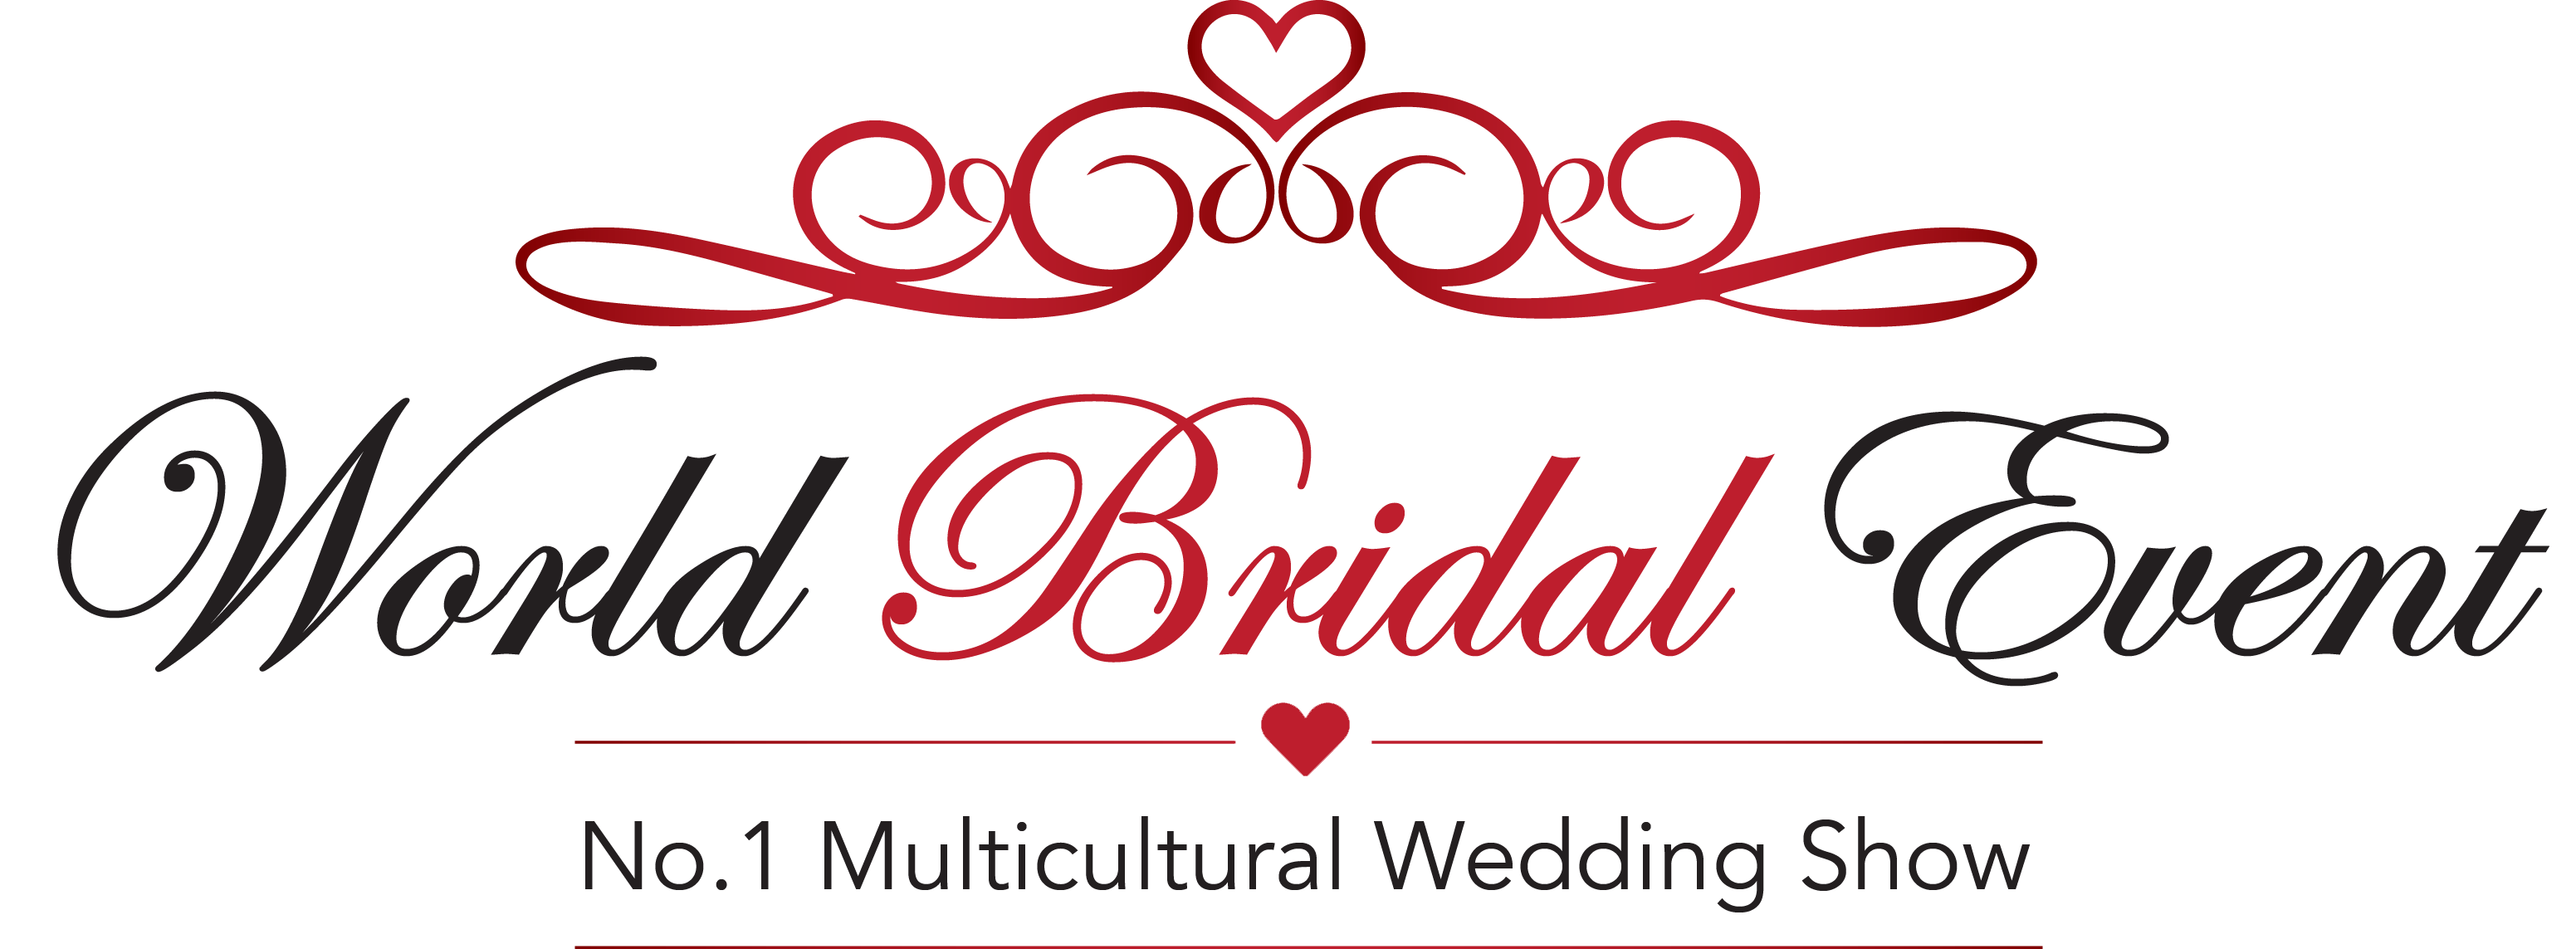 World Bridal Event- Yorkshire- Multi Cultural Wedding- Venue Styling- Sophias Final Touch